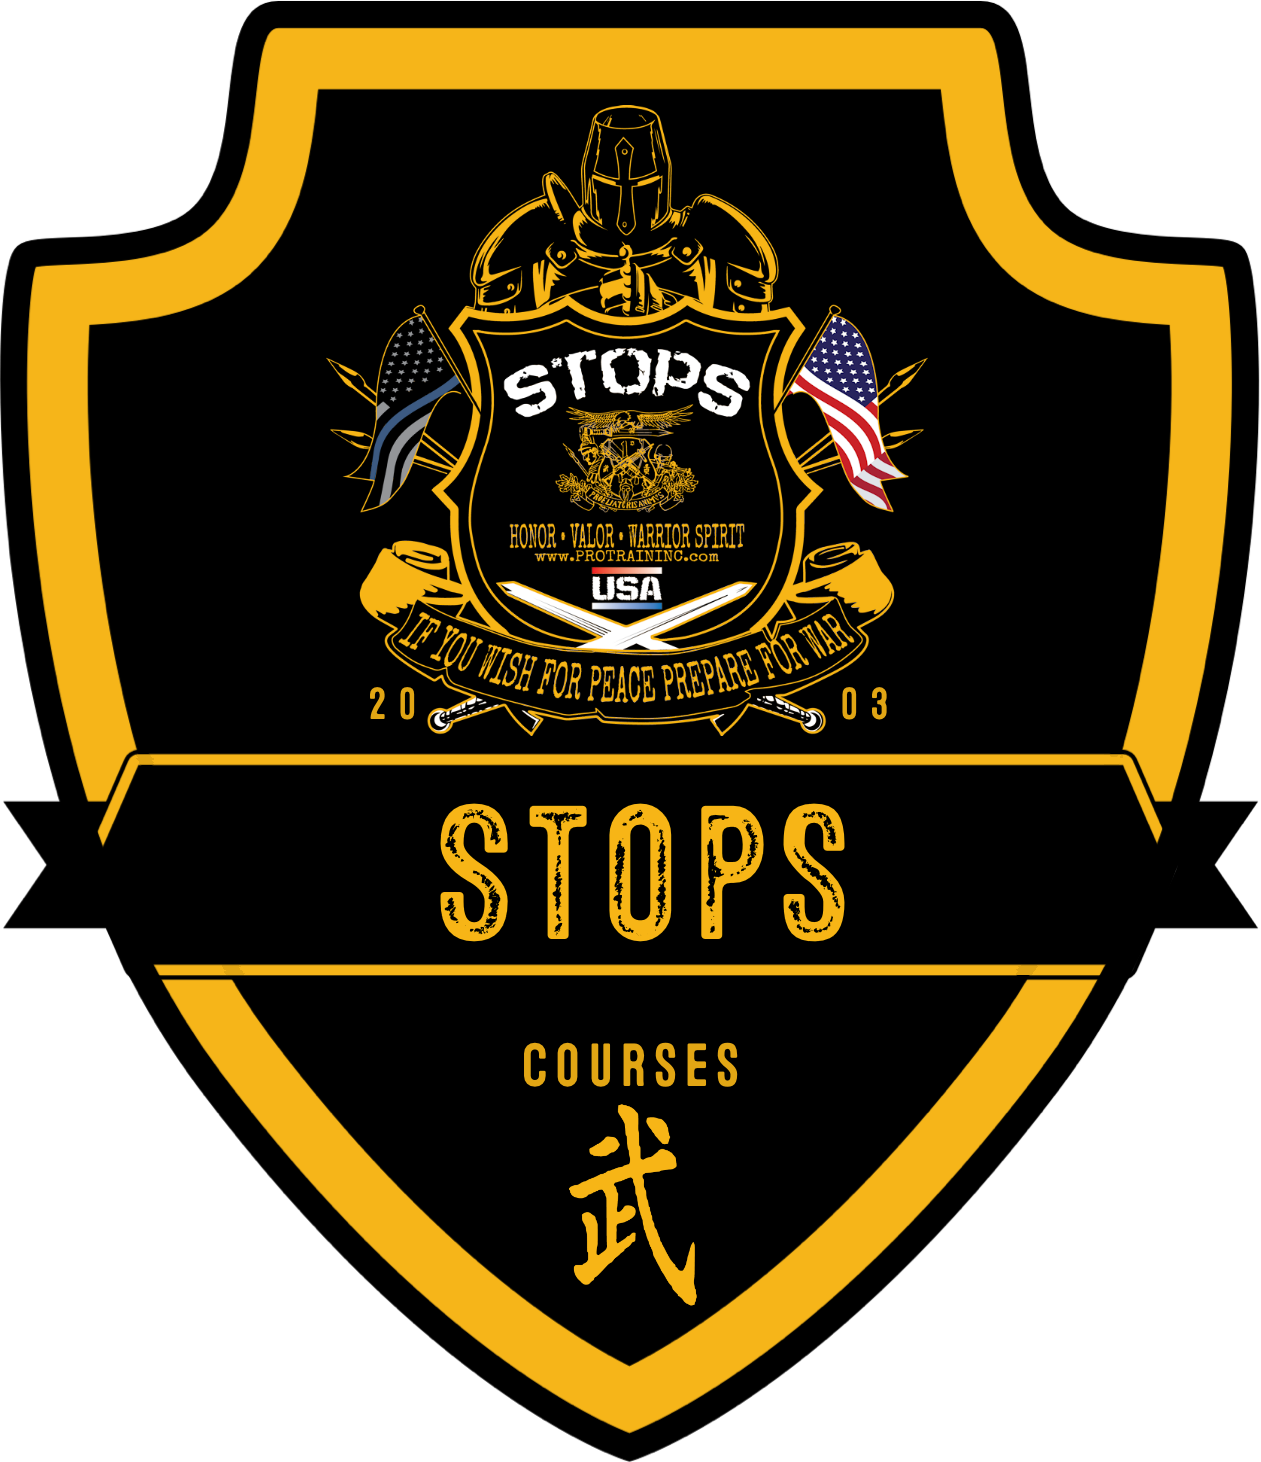 STOPS Courses